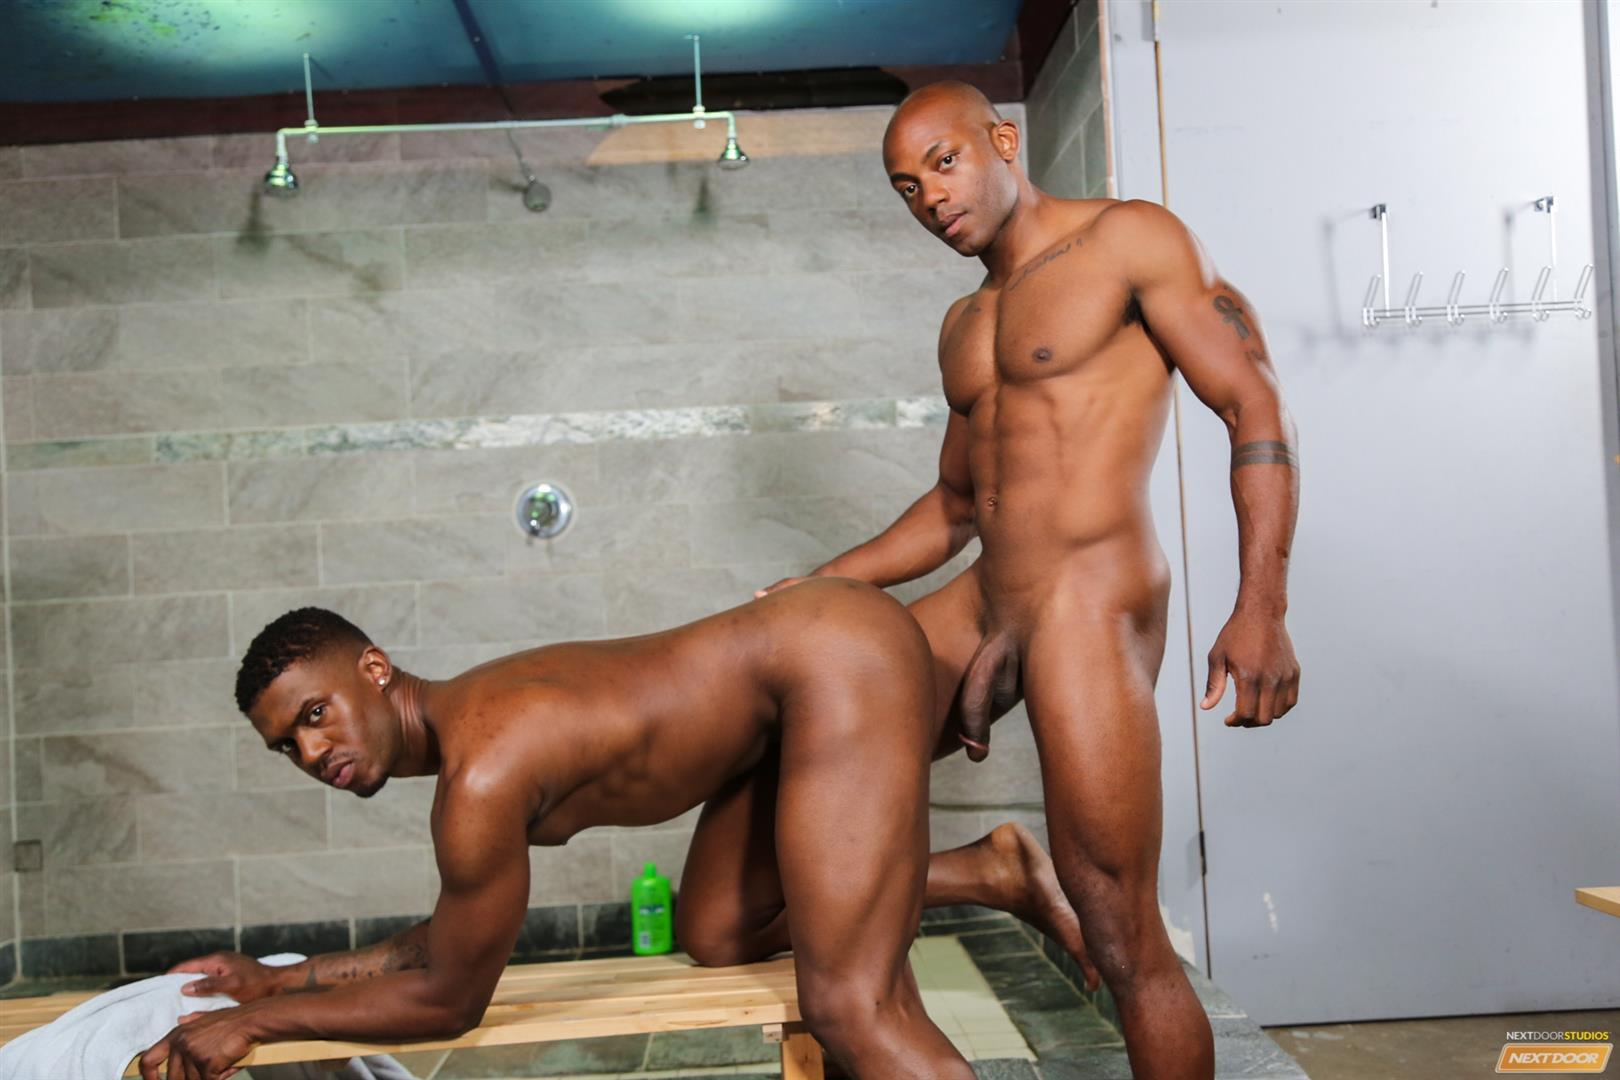 Next Door Ebony Krave Moore and Osiris Blade Big Black Cocks Dicks Fucking Amateur Gay Porn 12